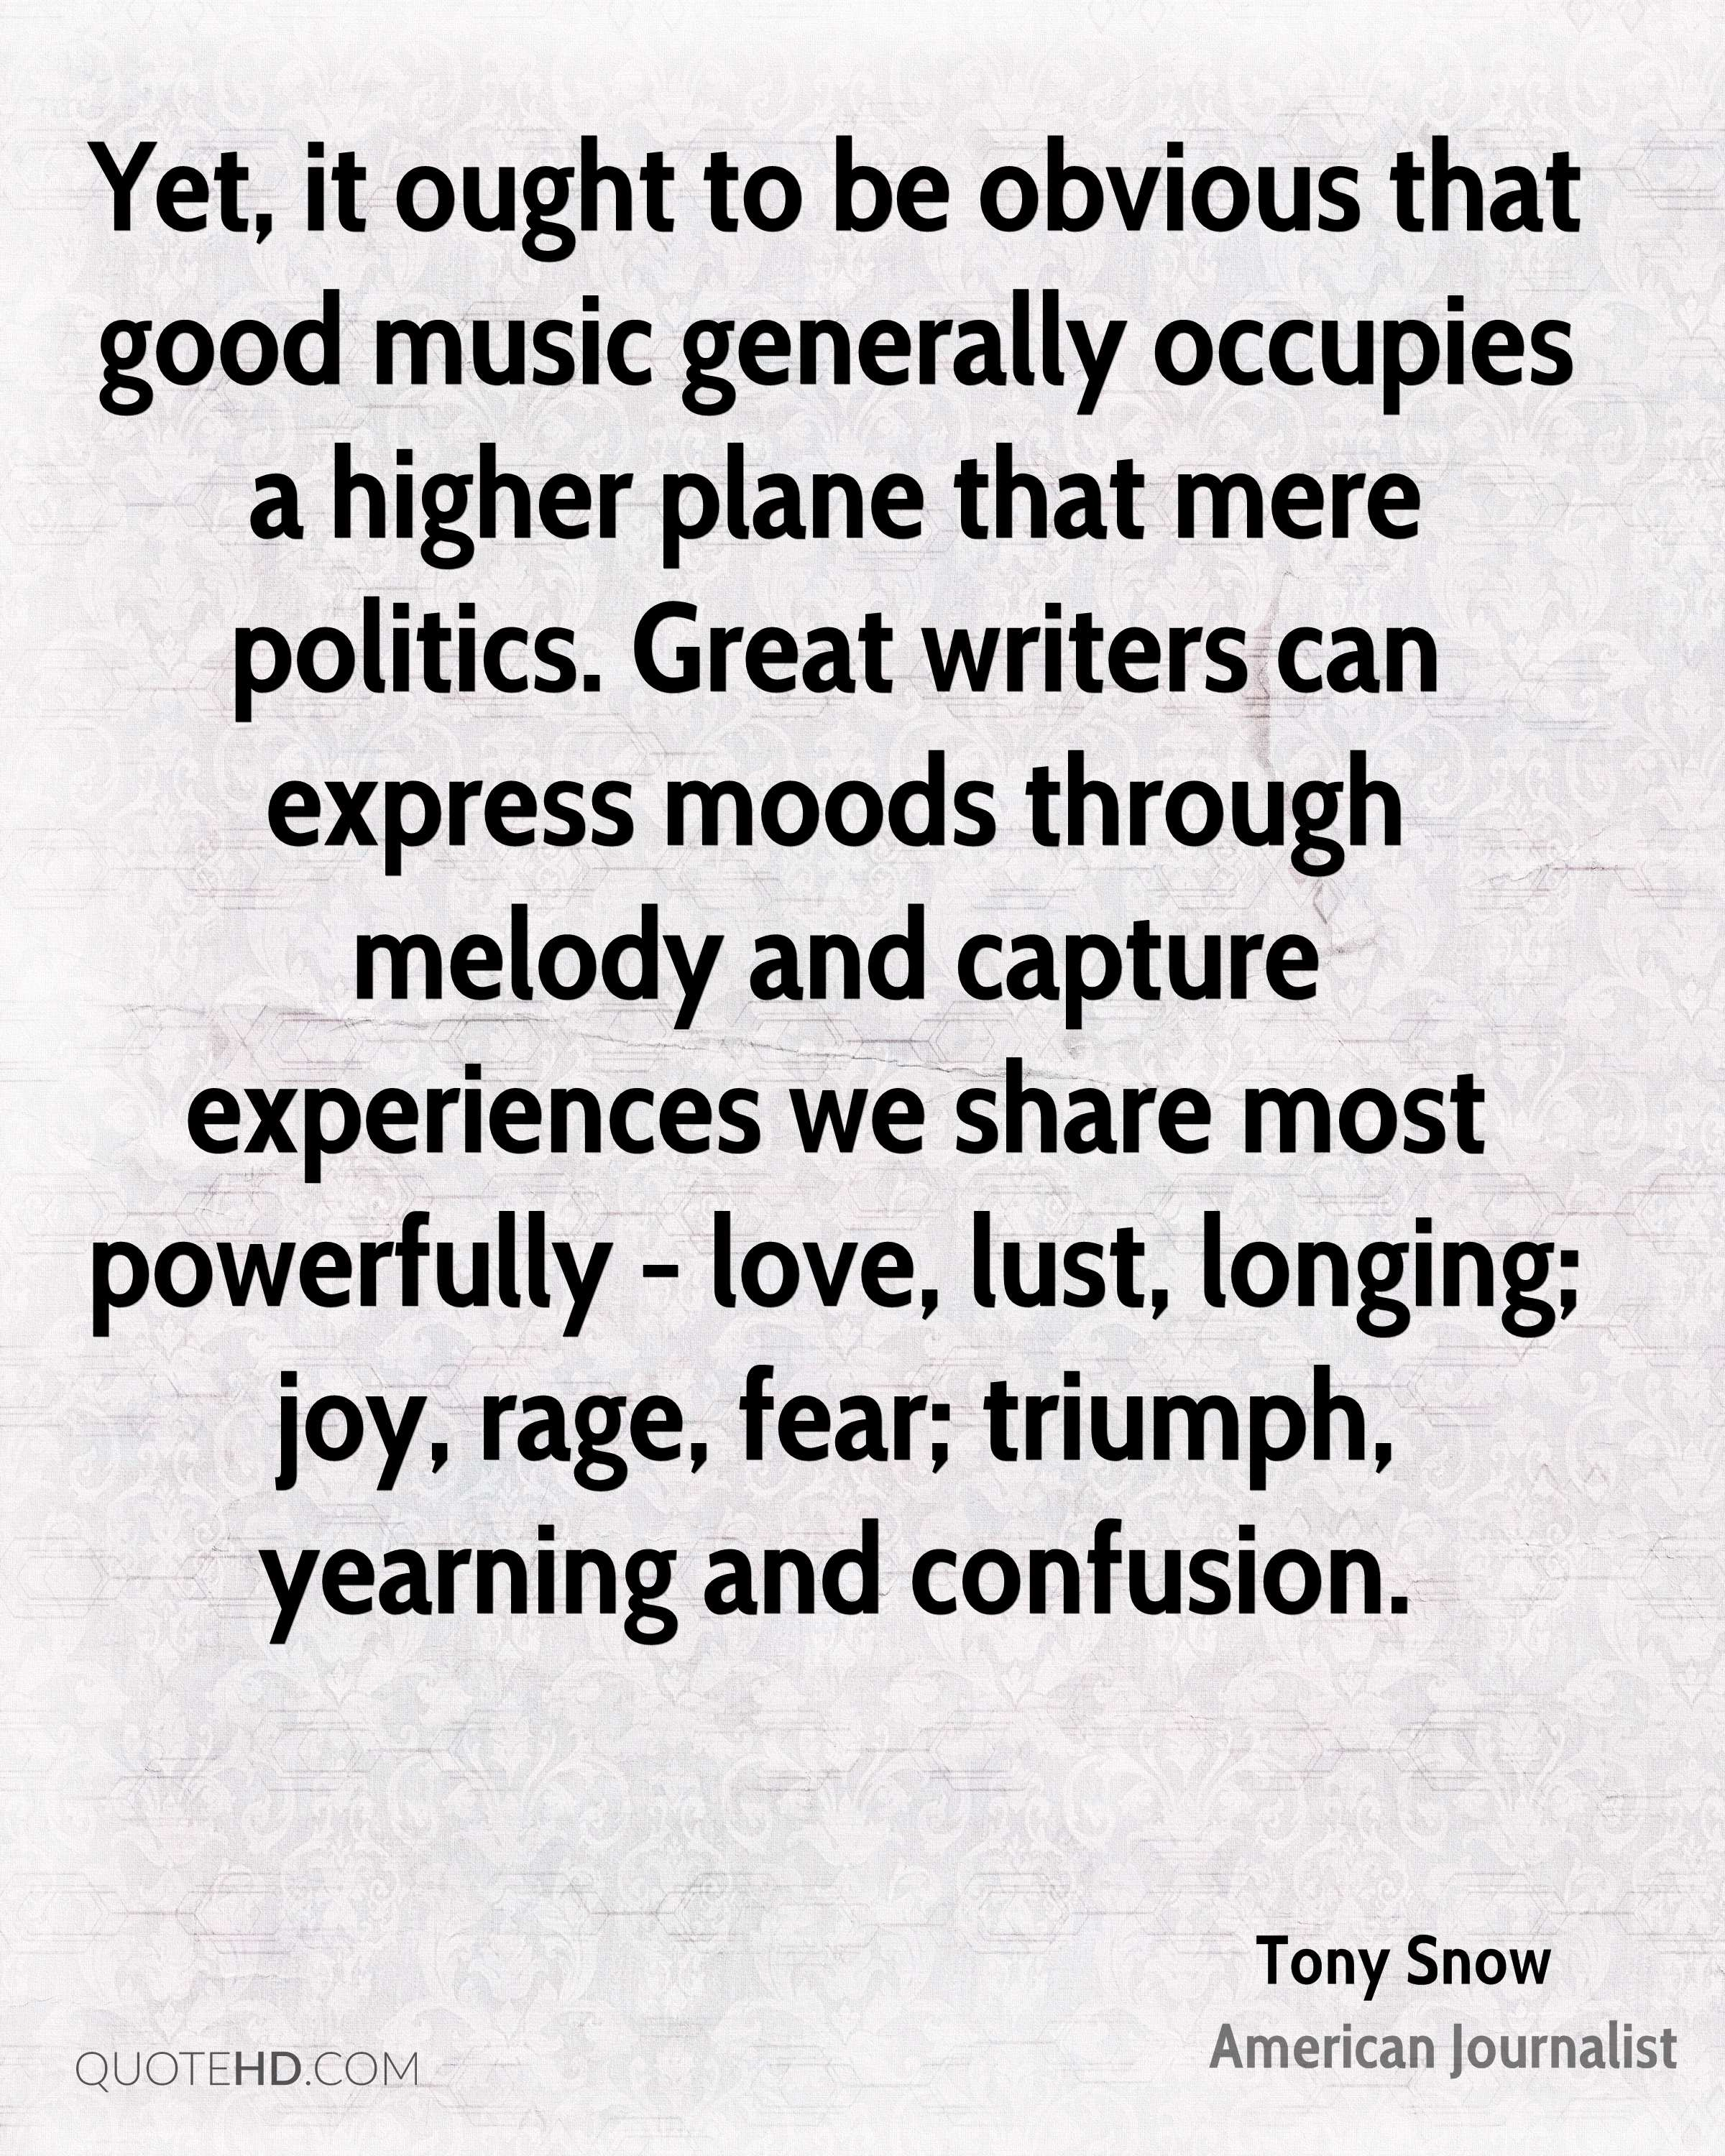 Yet, it ought to be obvious that good music generally occupies a higher plane that mere politics. Great writers can express moods through melody and capture experiences we share most powerfully - love, lust, longing; joy, rage, fear; triumph, yearning and confusion.